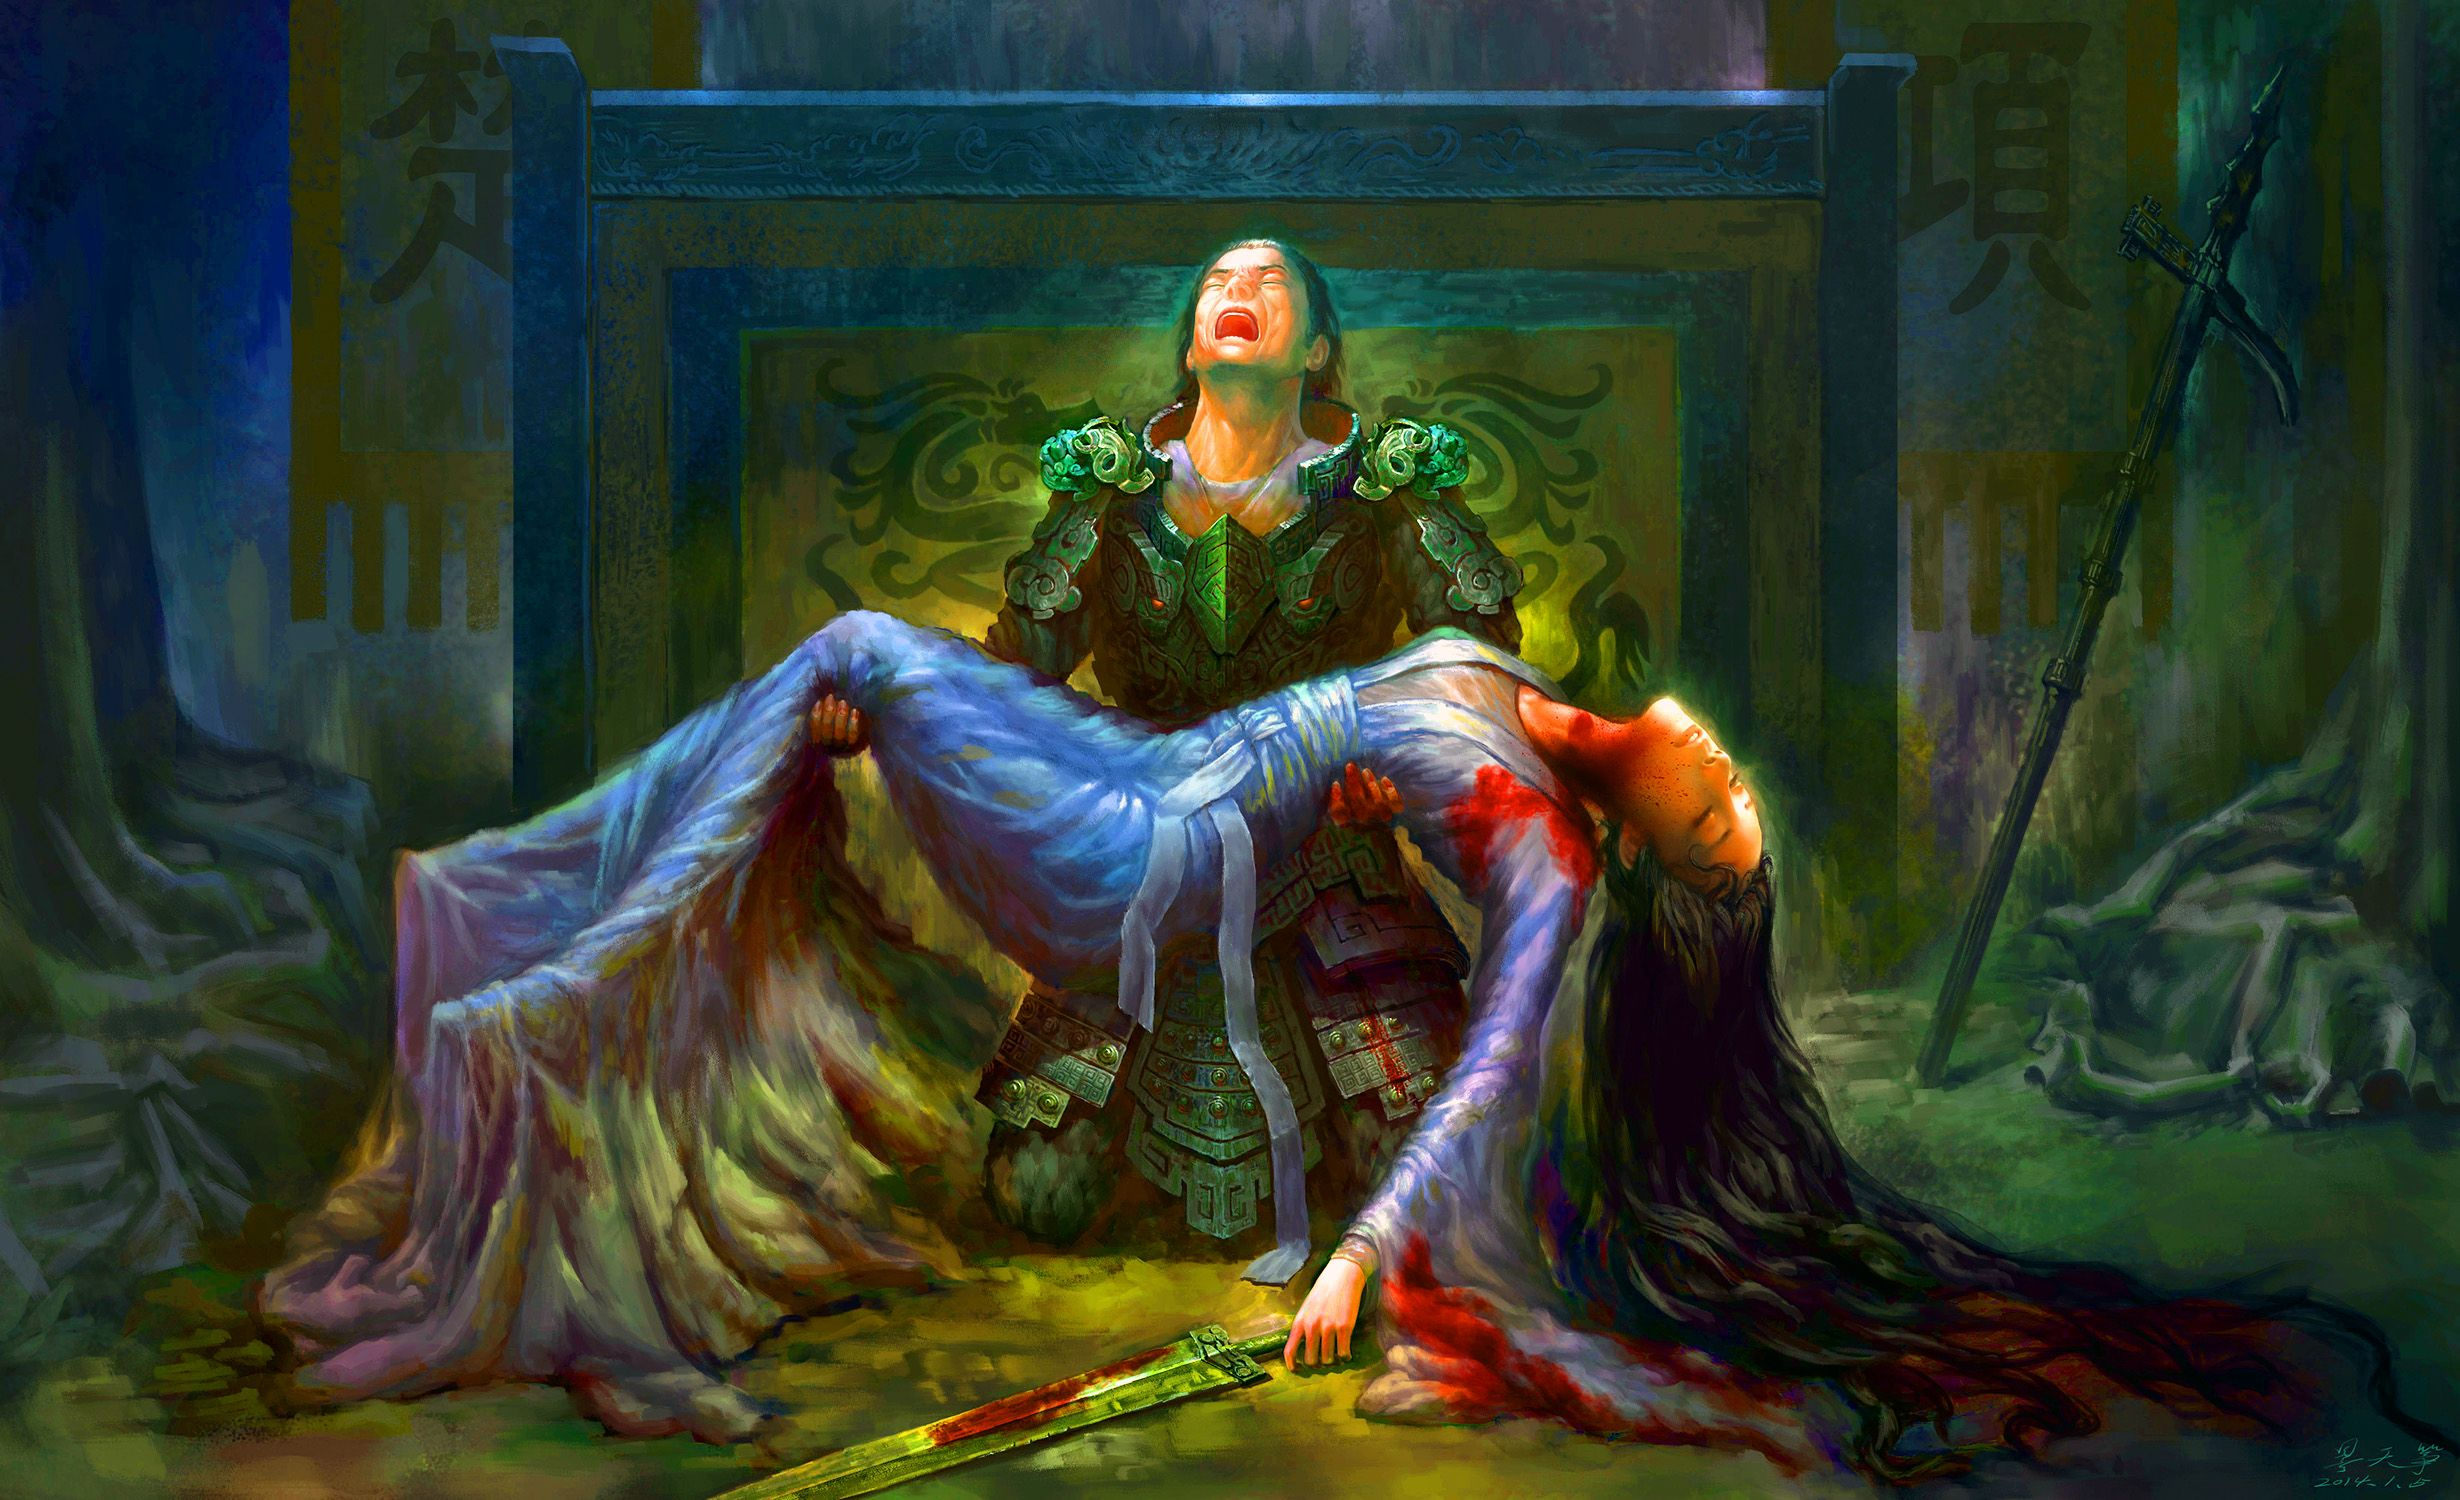 General Xiang-Yu mourning the death of his mistress during the Chu-Han Contention